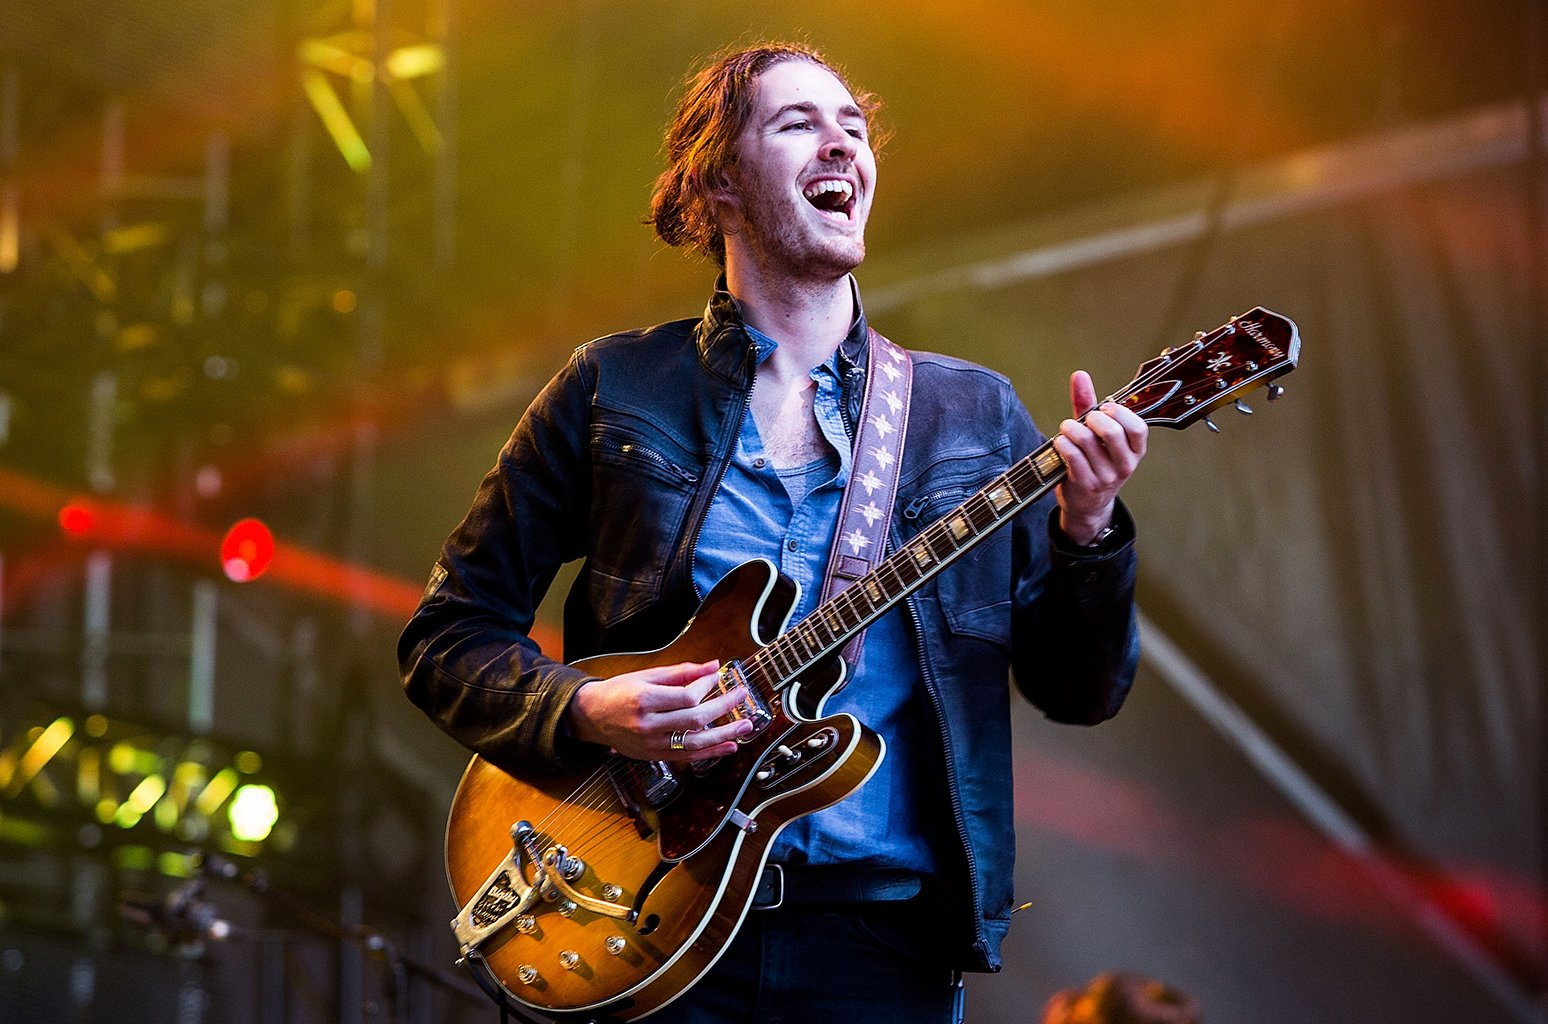 Hozier announces North American tour and says 'completion of the record is fast approaching' https://t.co/kfPLlBEvCx https://t.co/sw9JMbH6Aq